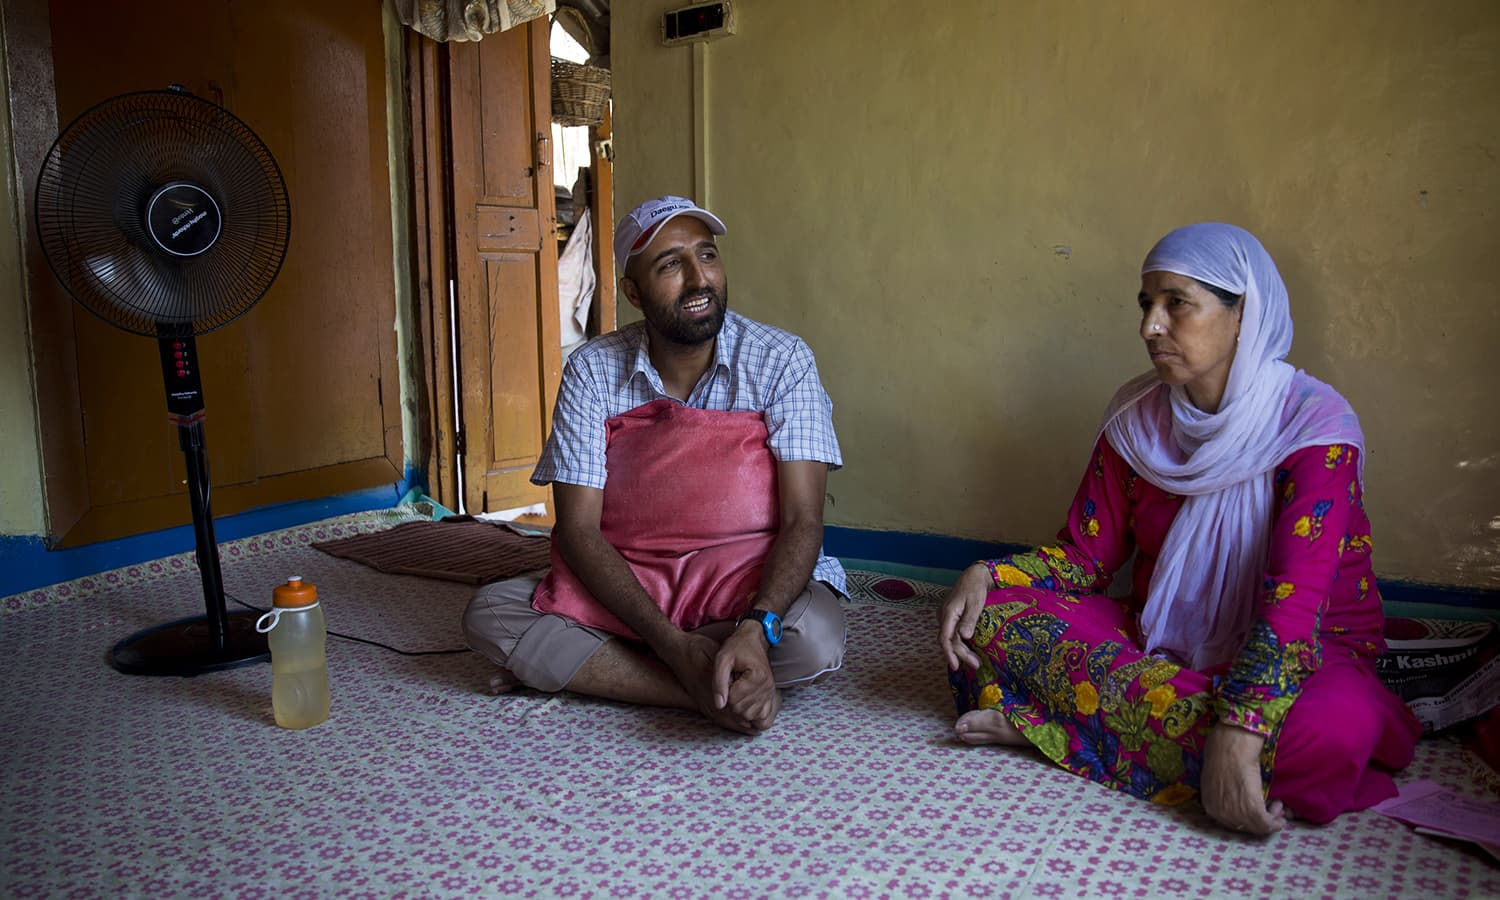 Cancer patient haleema banoo and her son reyaz ahmed speak to the associated press inside their